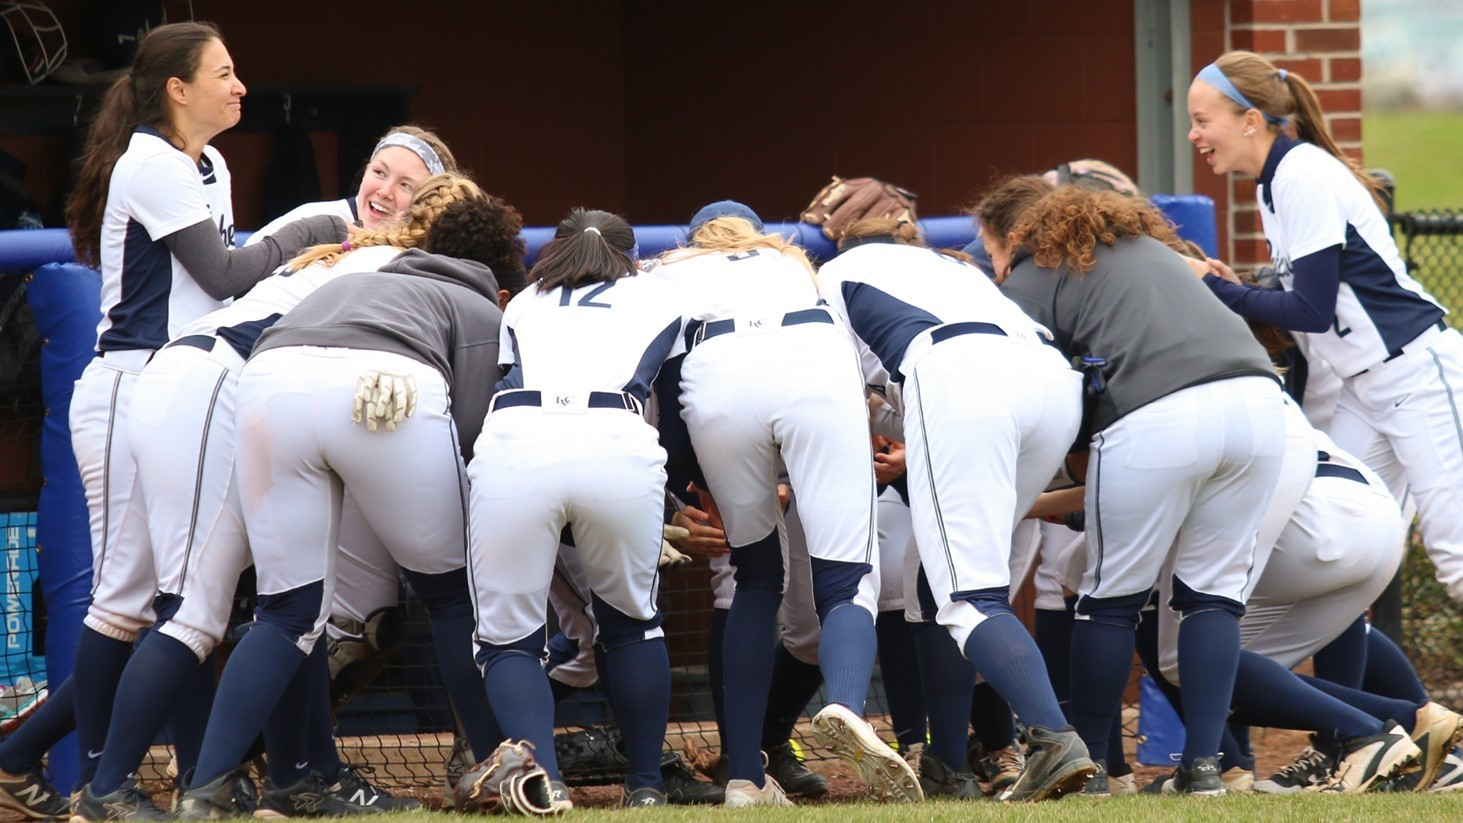 Softball pregame huddle